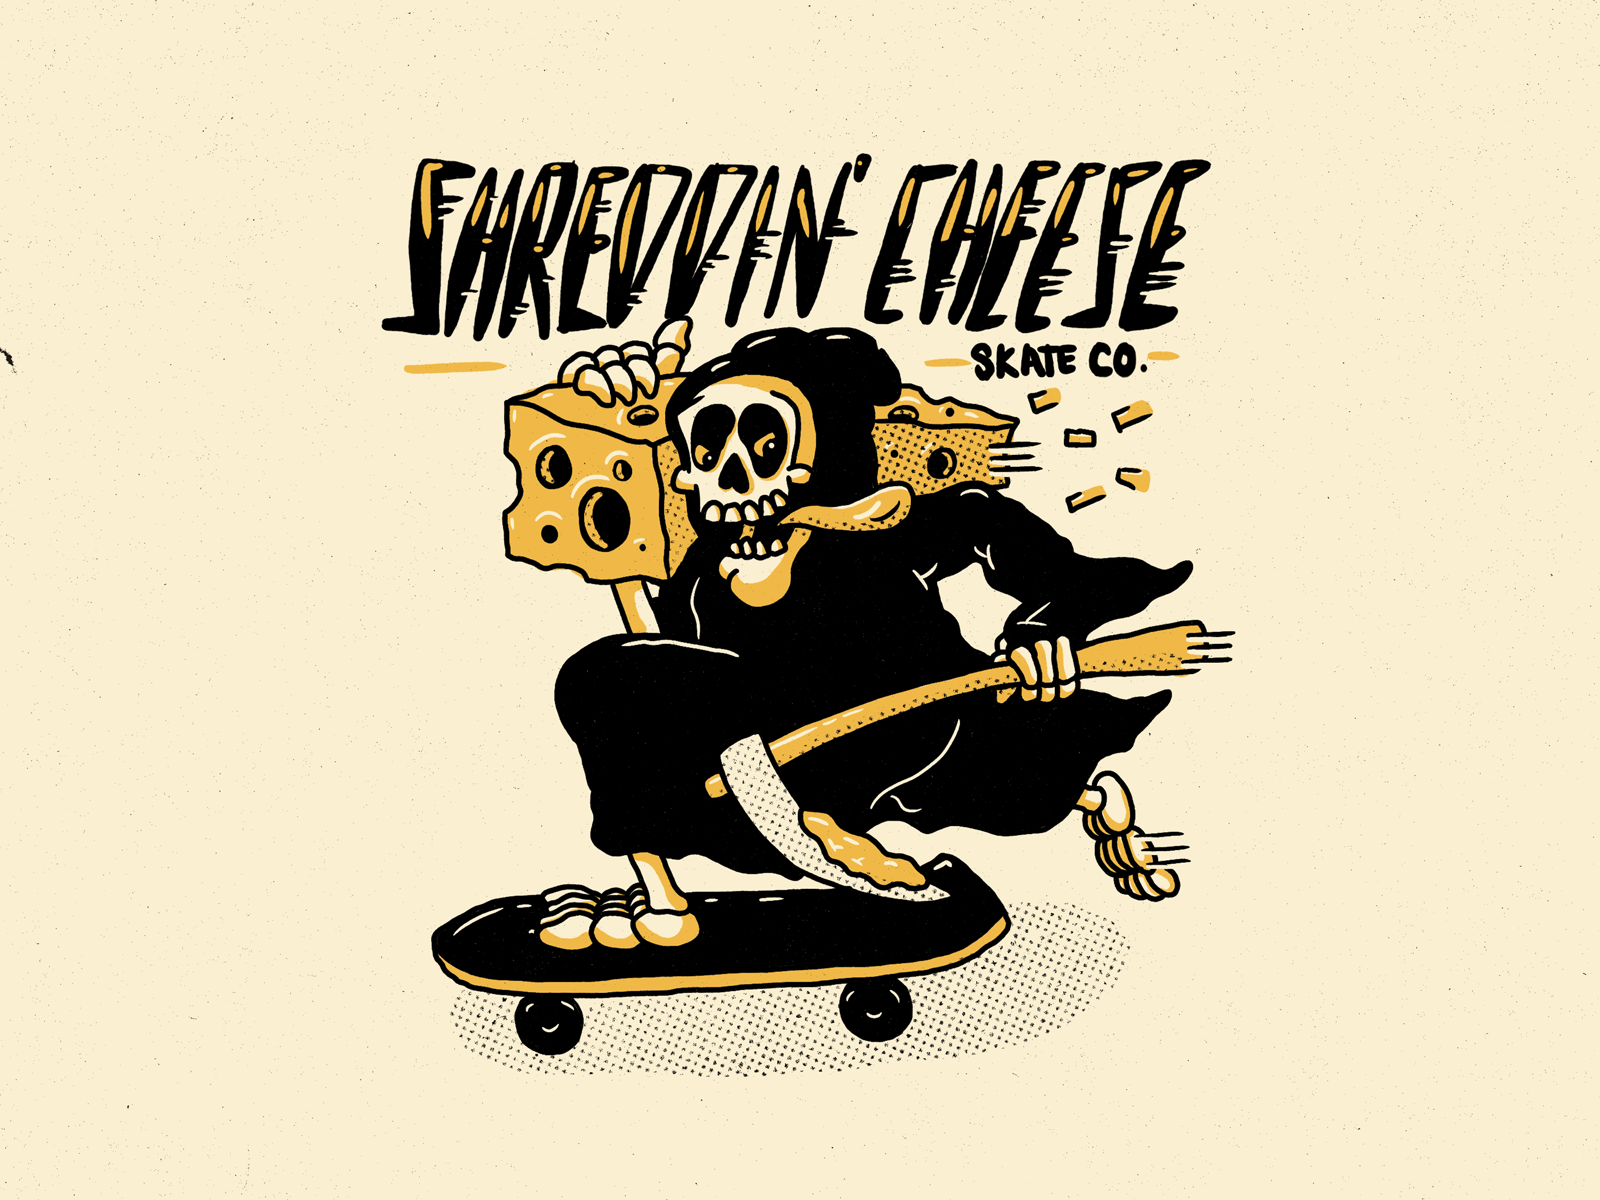 SBS_IM_19_SHREDDIN_CHEESE_FULL_BODY_1.png